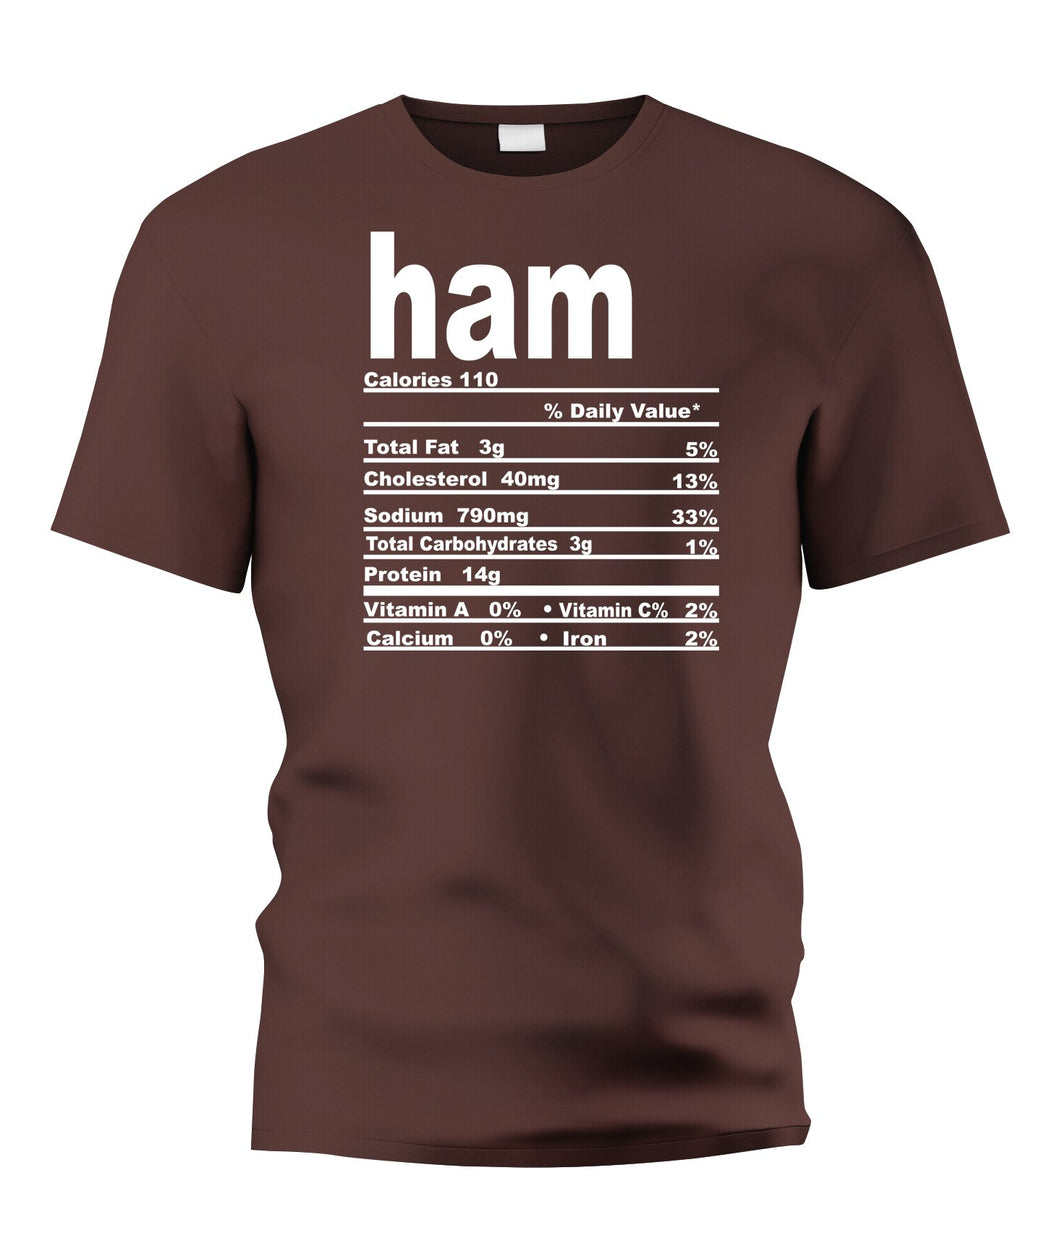 Ham Nutritional Facts Tee